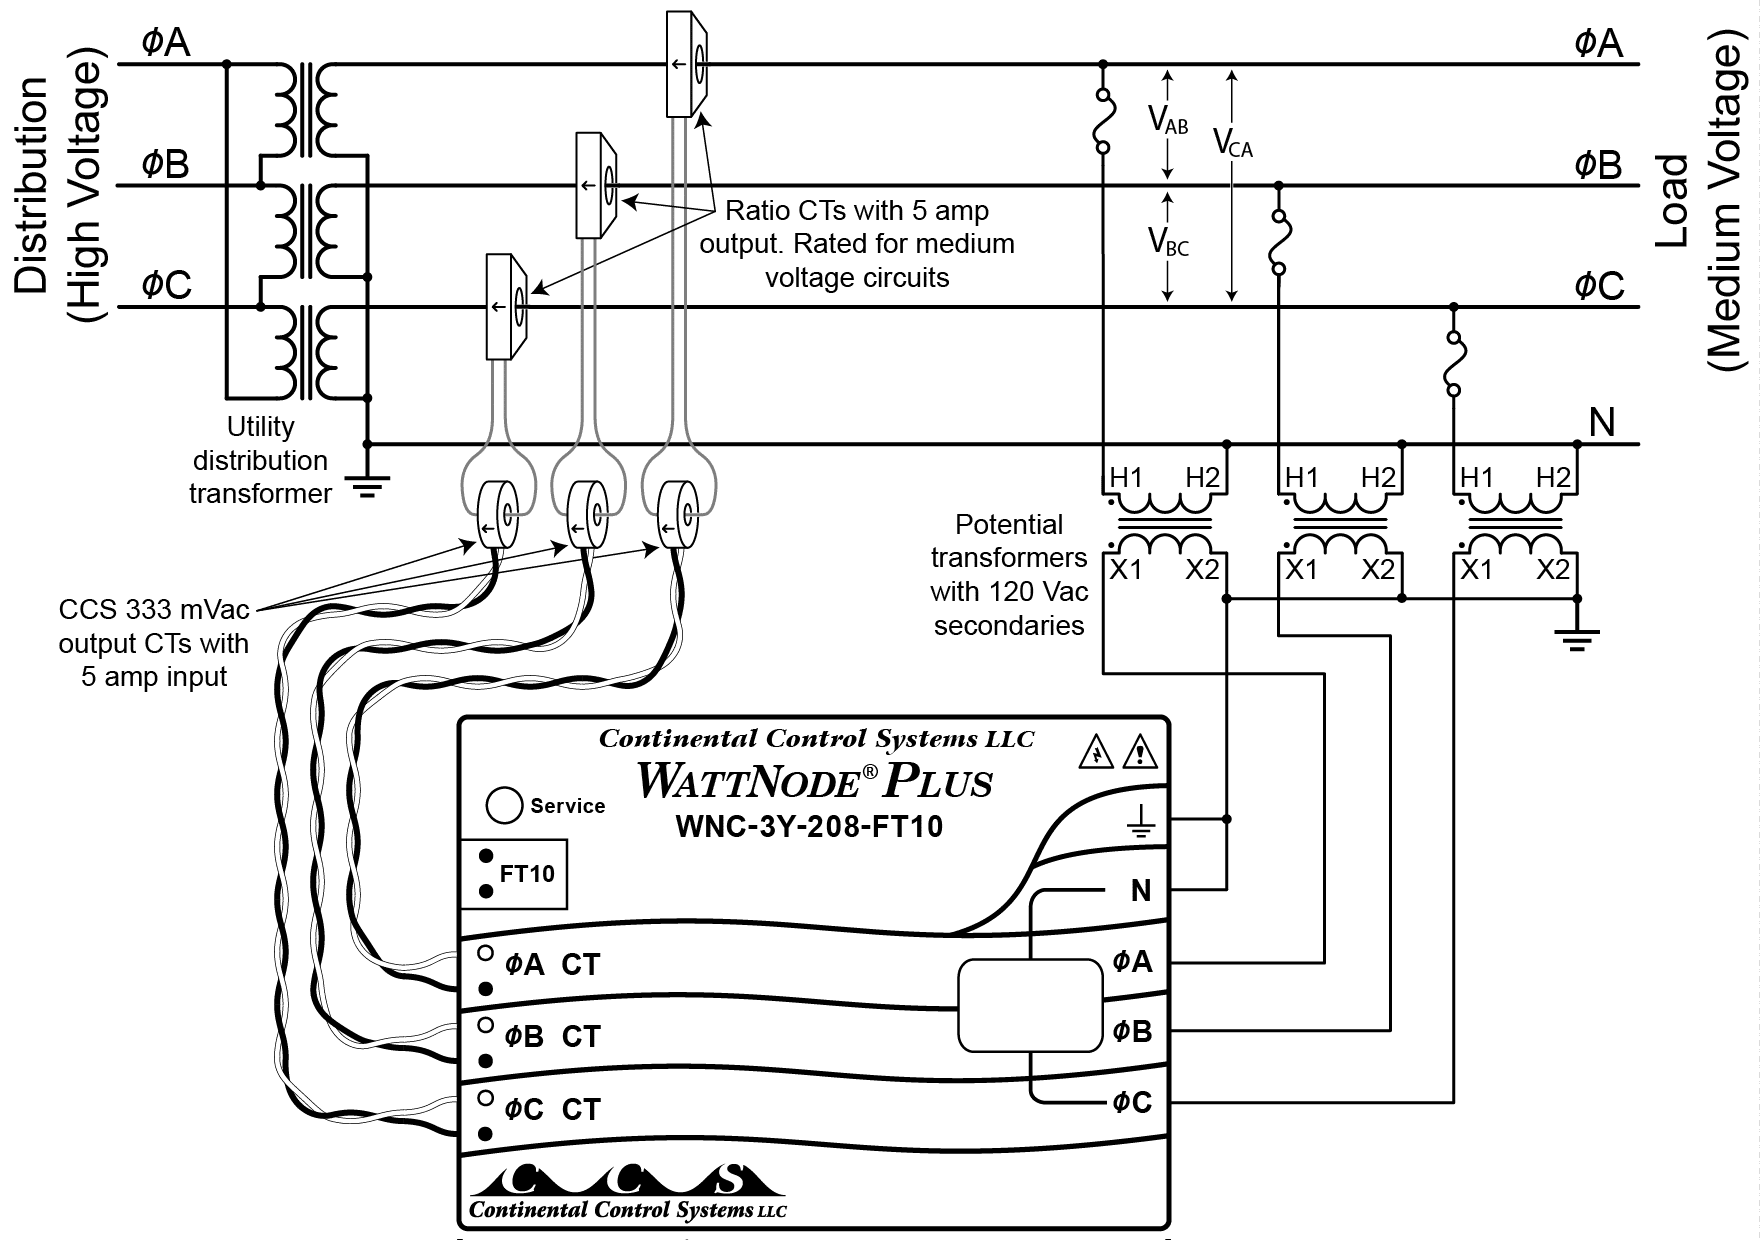 Center On 2 Channel Amp Wiring Diagram Center Circuit Diagrams